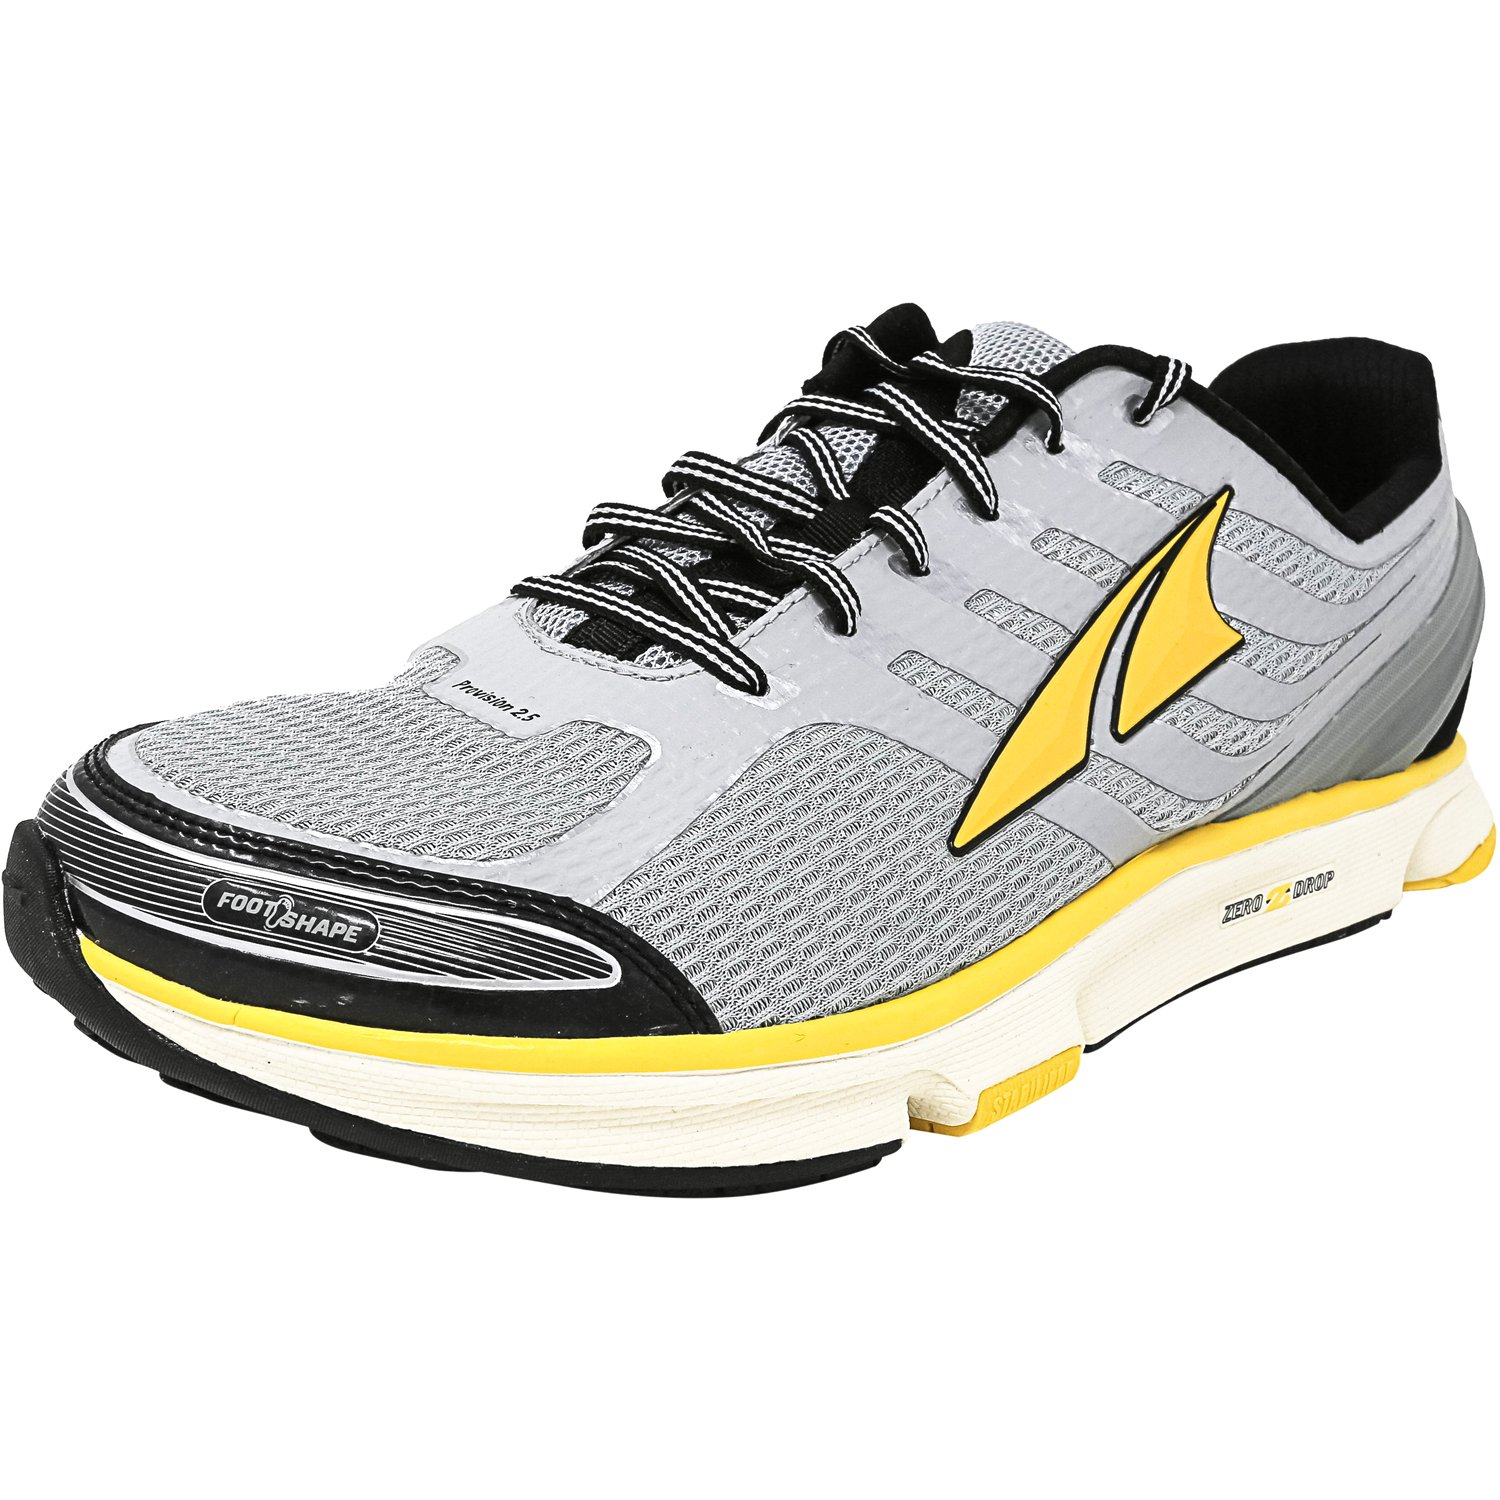 Altra Men's Provision 2.5 Silver / Cyber Yellow Ankle-High Running Shoe - 8.5M